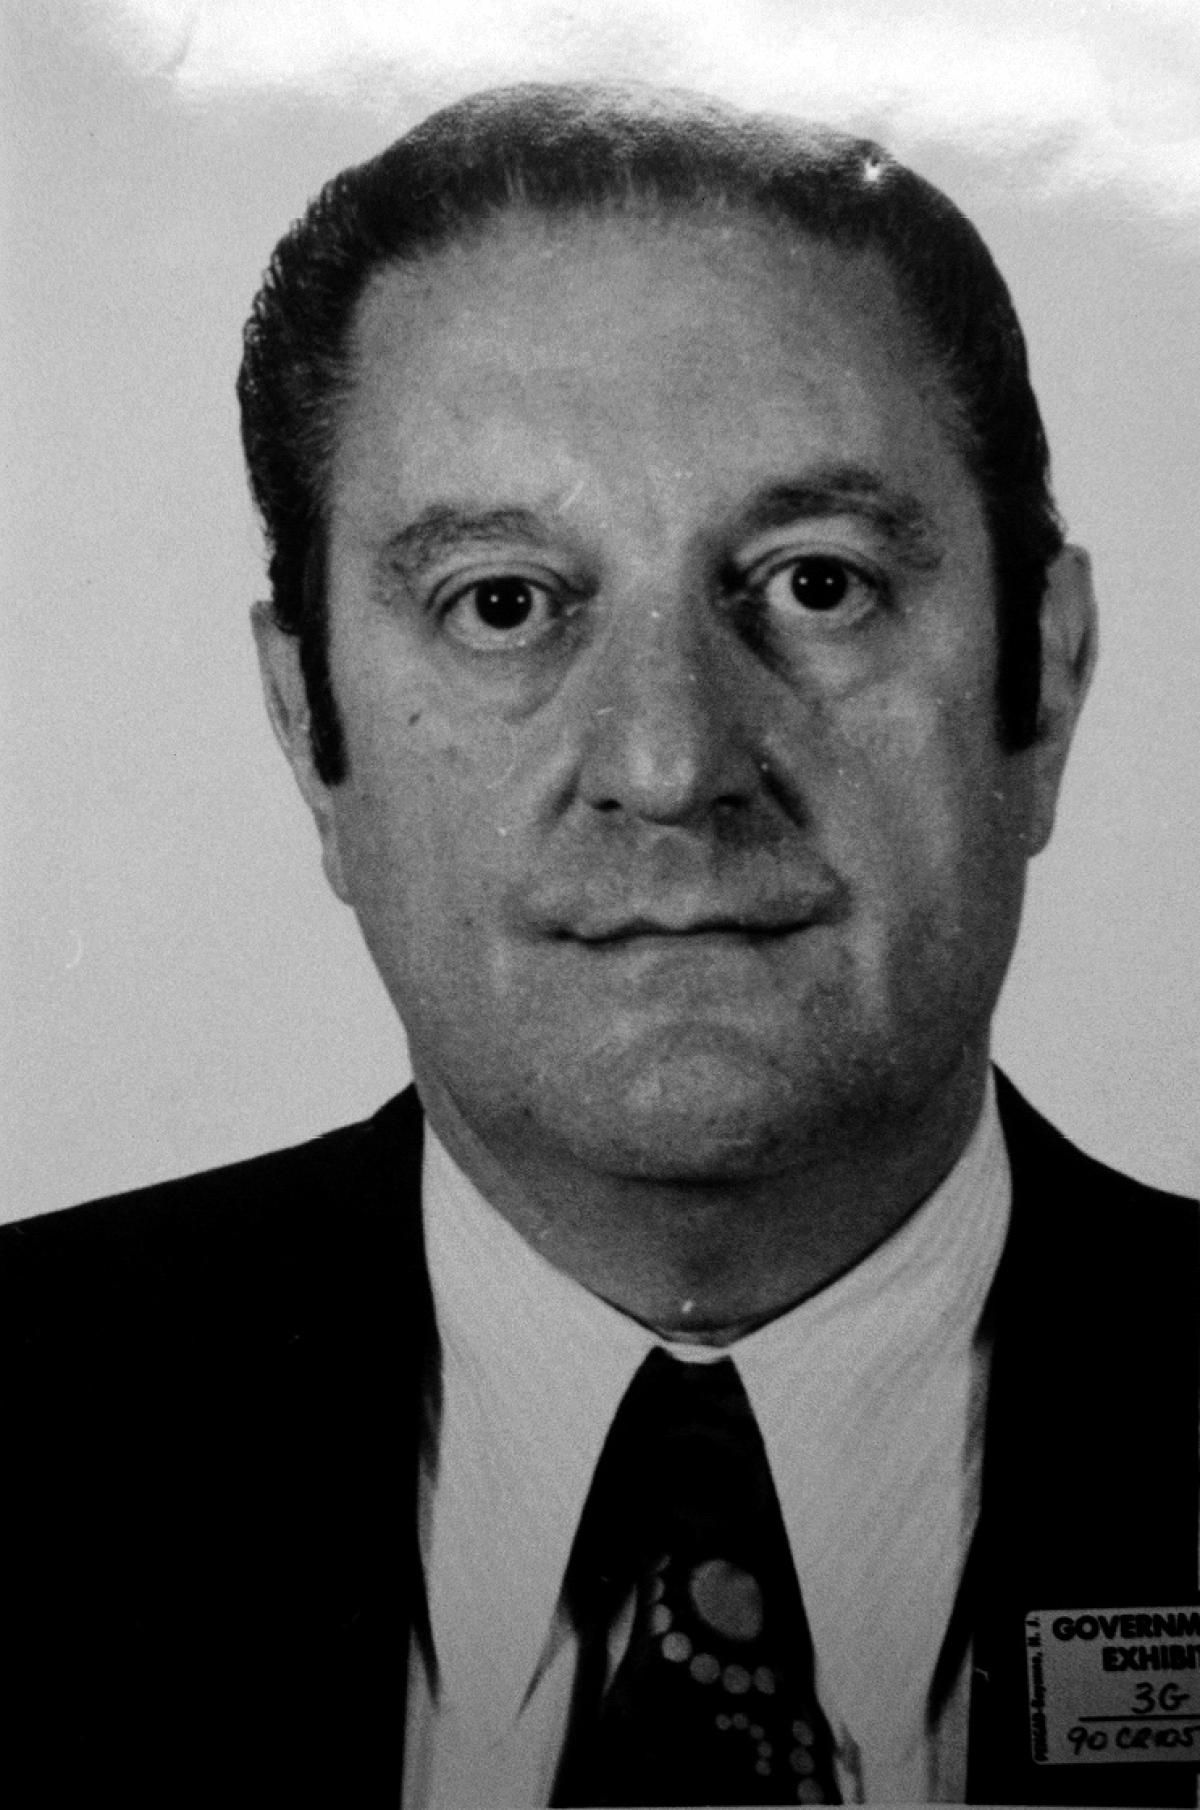 In the 1940's, Paul Castellano became a member of the Mangano family, eventually rising to capo, or high-ranking, member of a crime family. Eventually Castellano became acting boss of the Gambino crime family in 1975 after Gambino became elderly. Castellano became quite the mob businessman in the late 1980's and through the 1990's as he launched a poultry distribution business and a concrete company making him more powerful than the Gambino family. He was appointed boss of the Gambino…